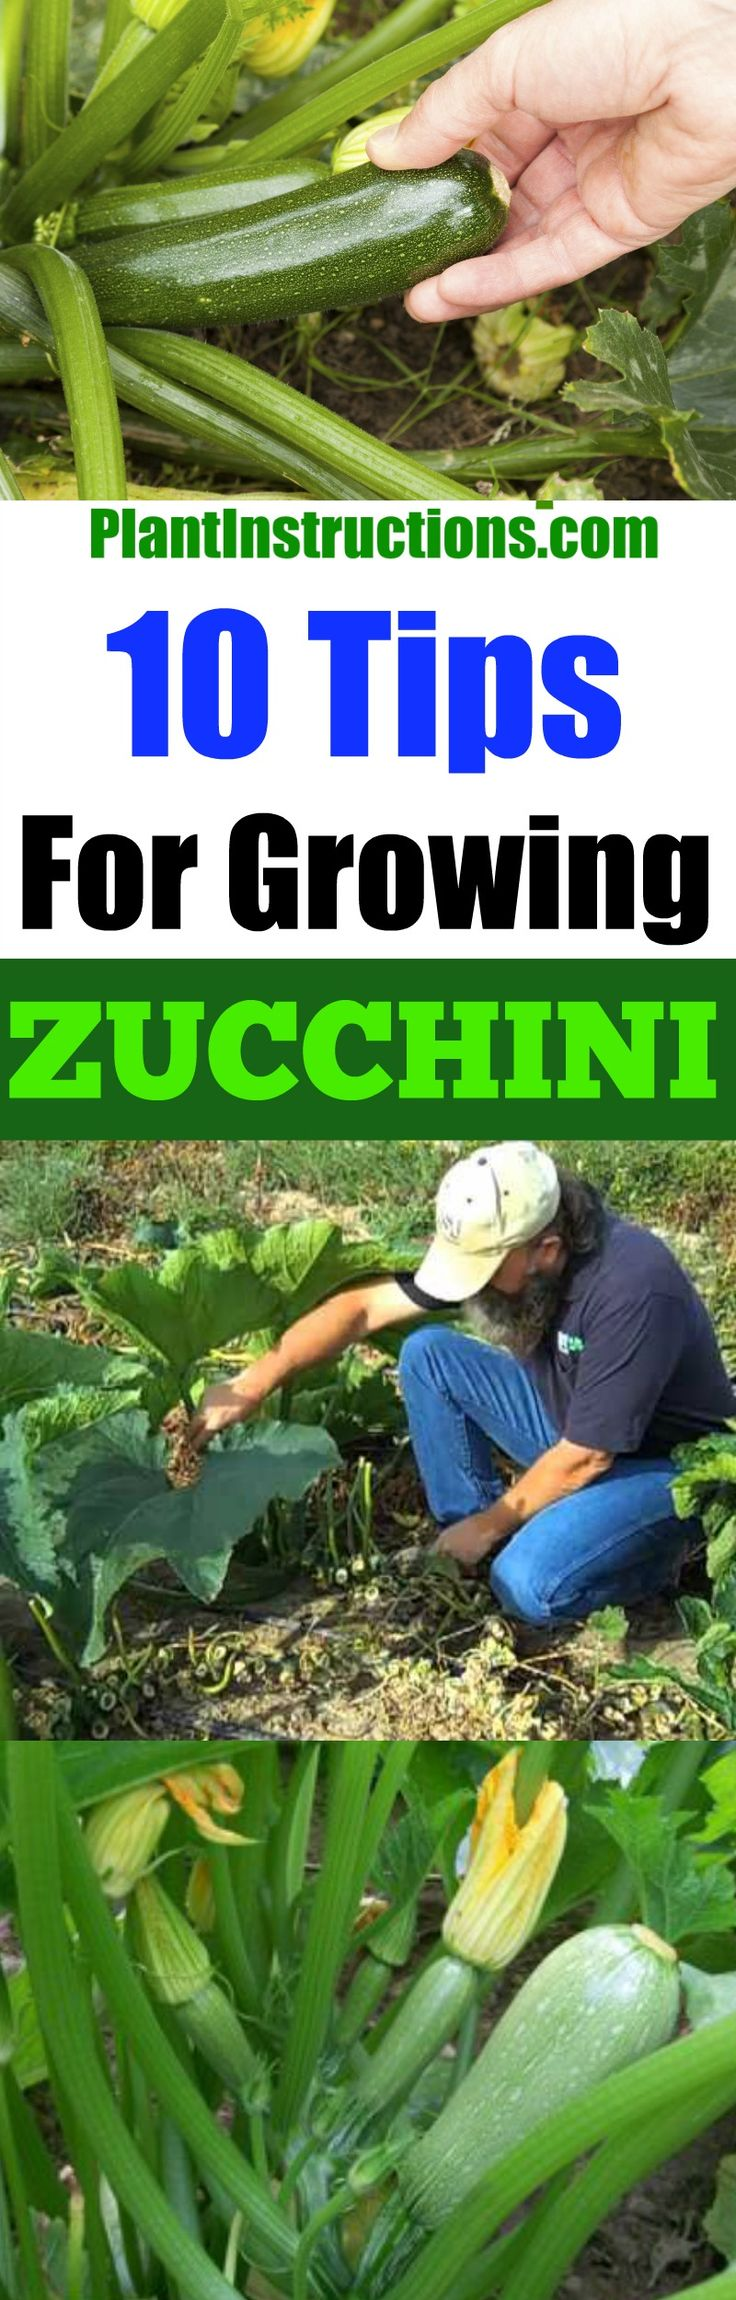 tips for growing zucchini